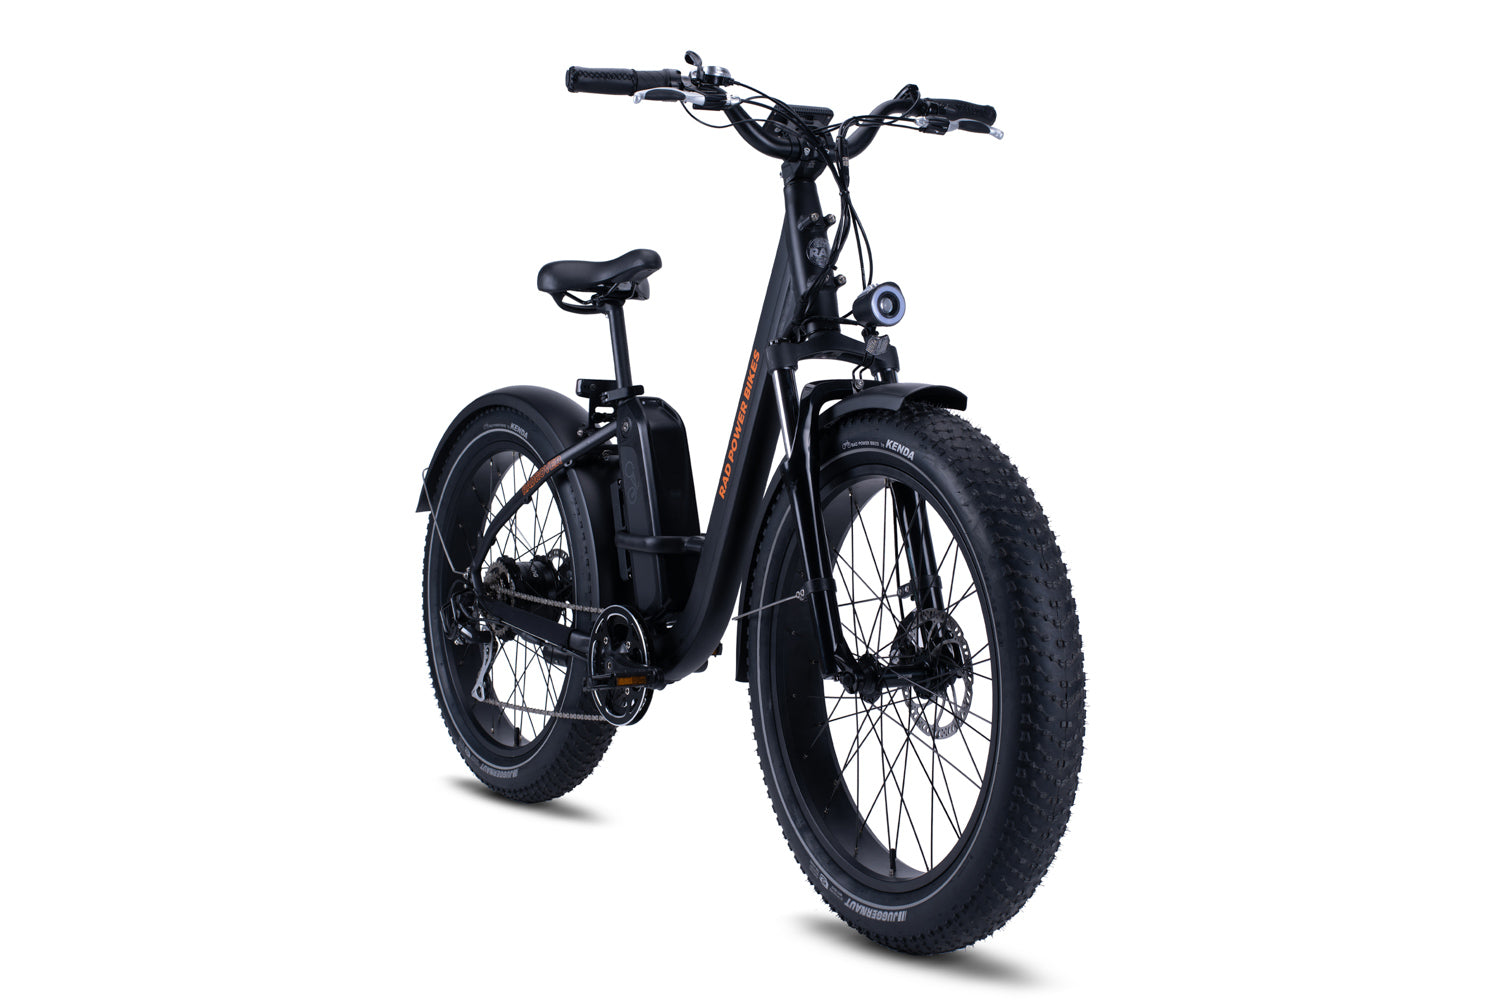 RadRover Step-Thru 1 electric fat bike